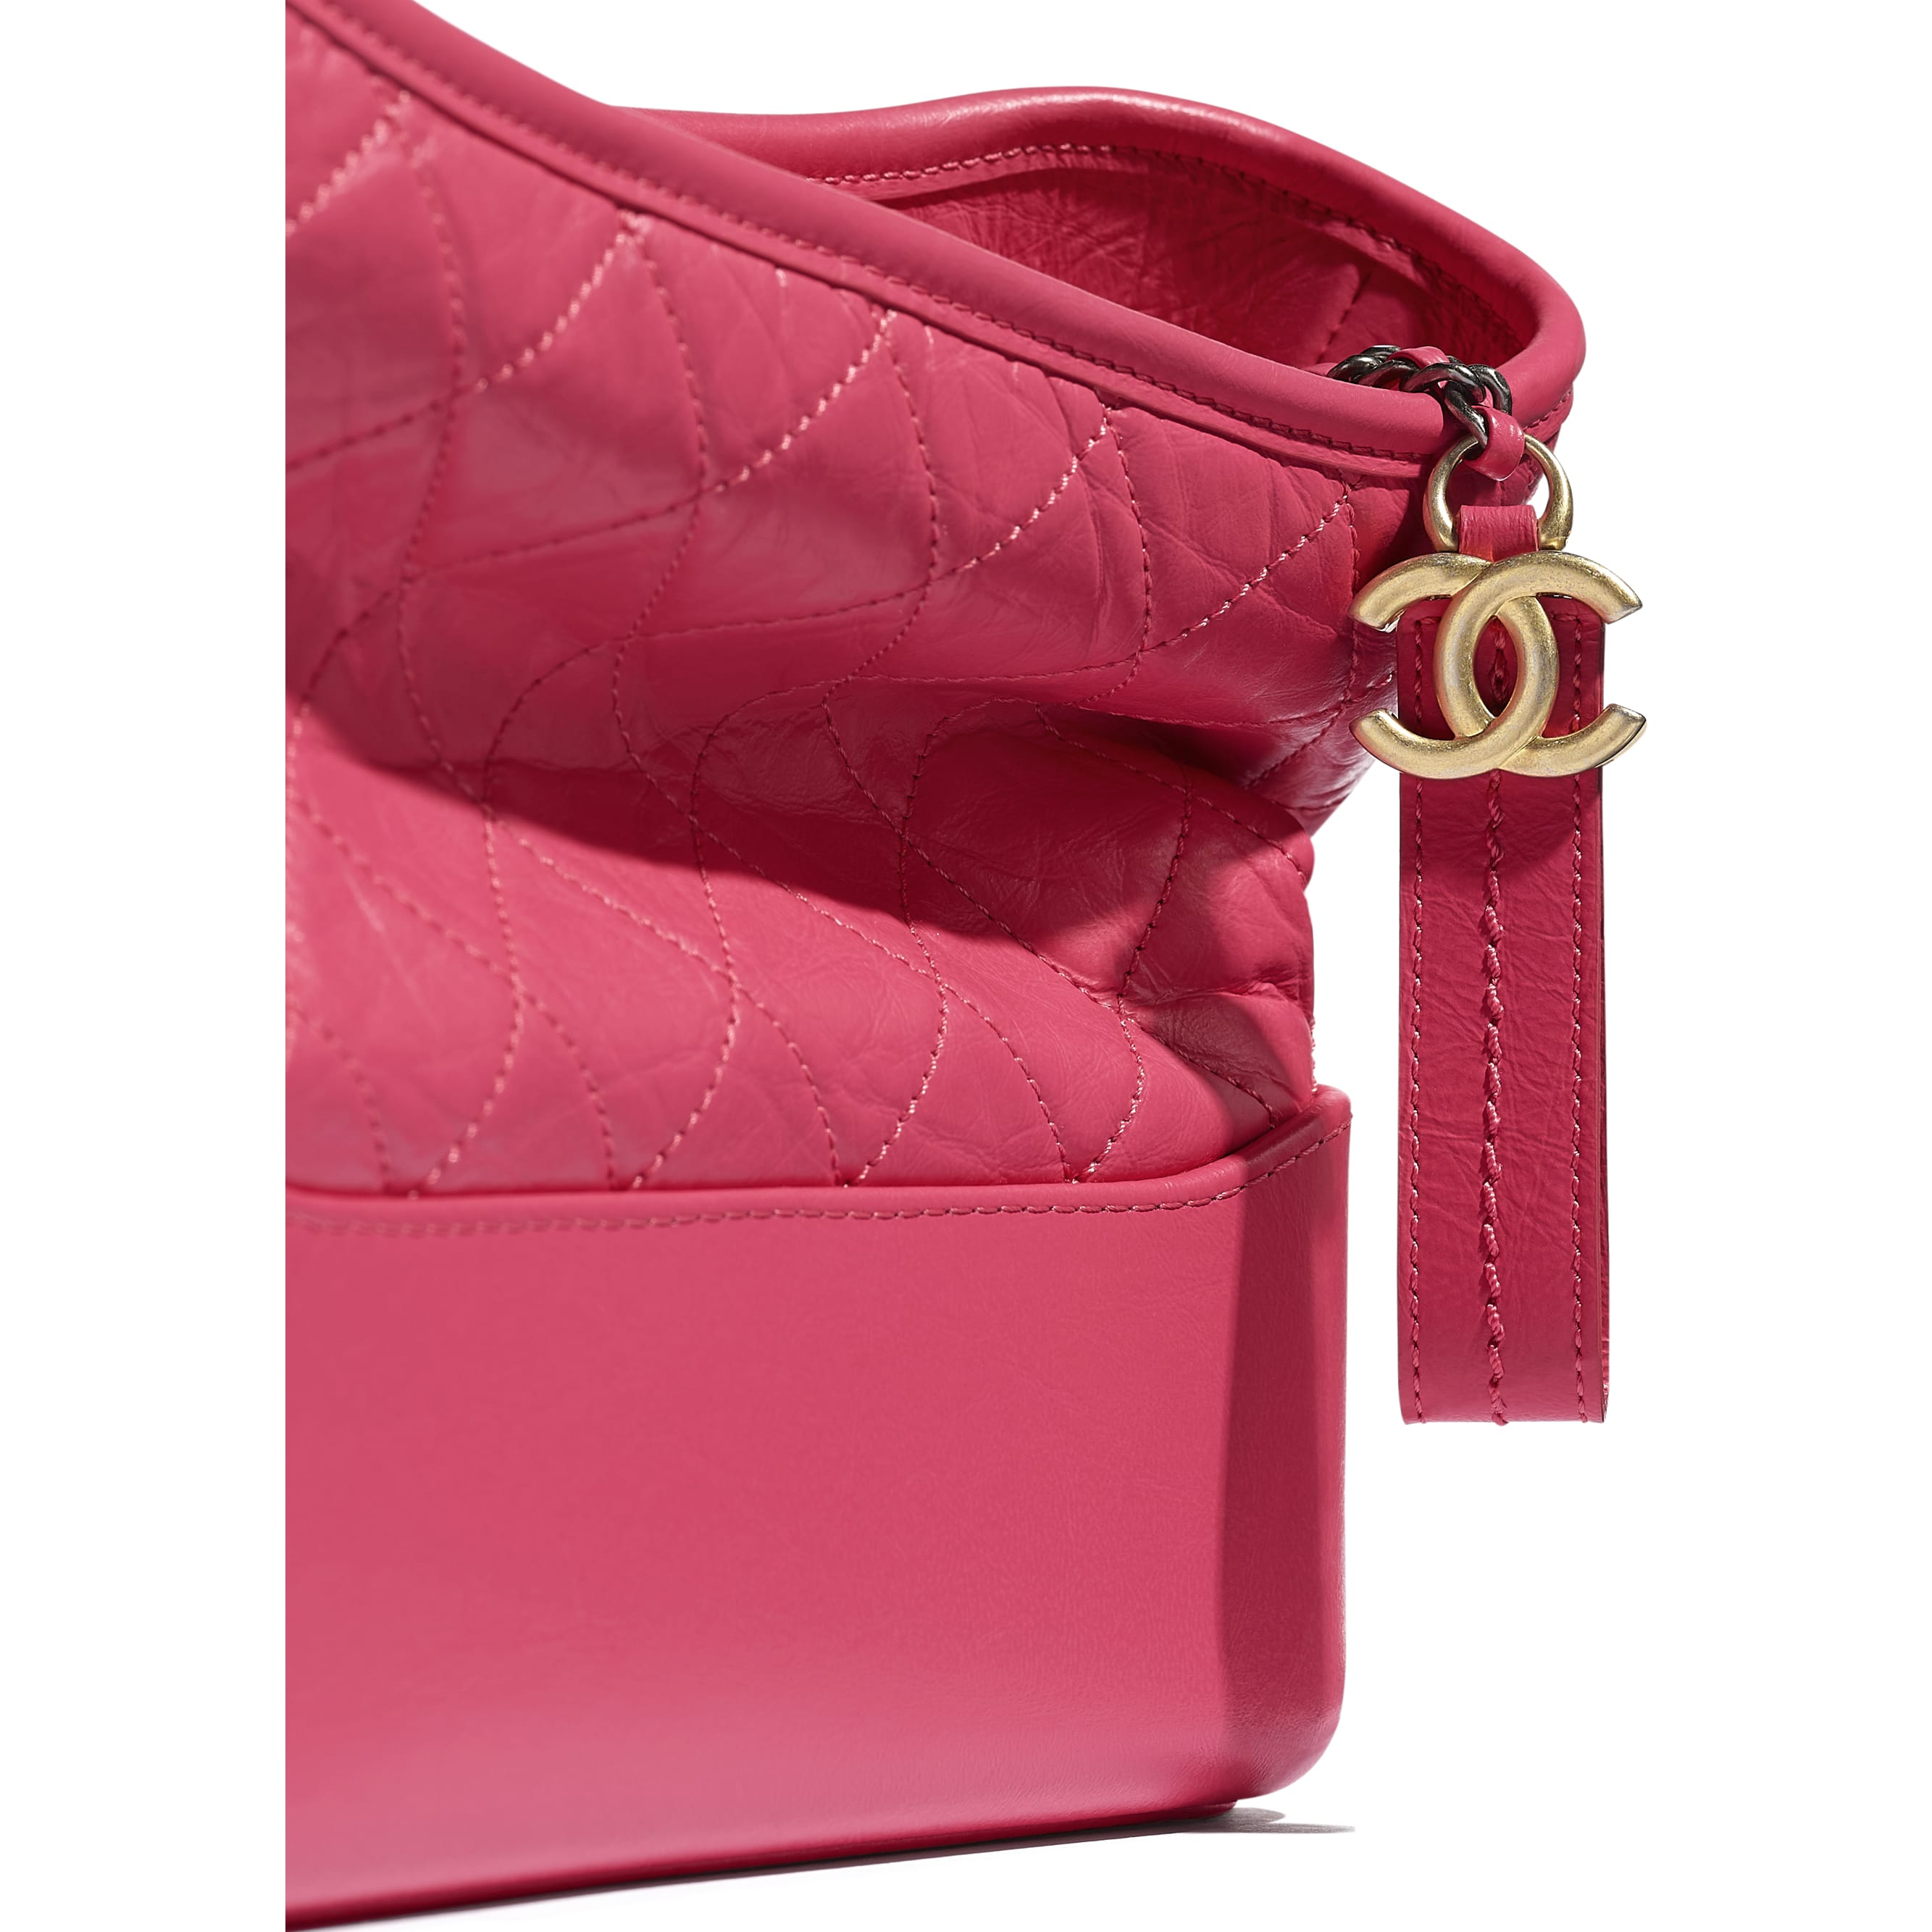 CHANEL'S GABRIELLE Hobo Handbag - Pink - Aged Calfskin, Smooth Calfskin, Gold-Tone, Silver-Tone & Ruthenium-Finish Metal - CHANEL - Extra view - see standard sized version